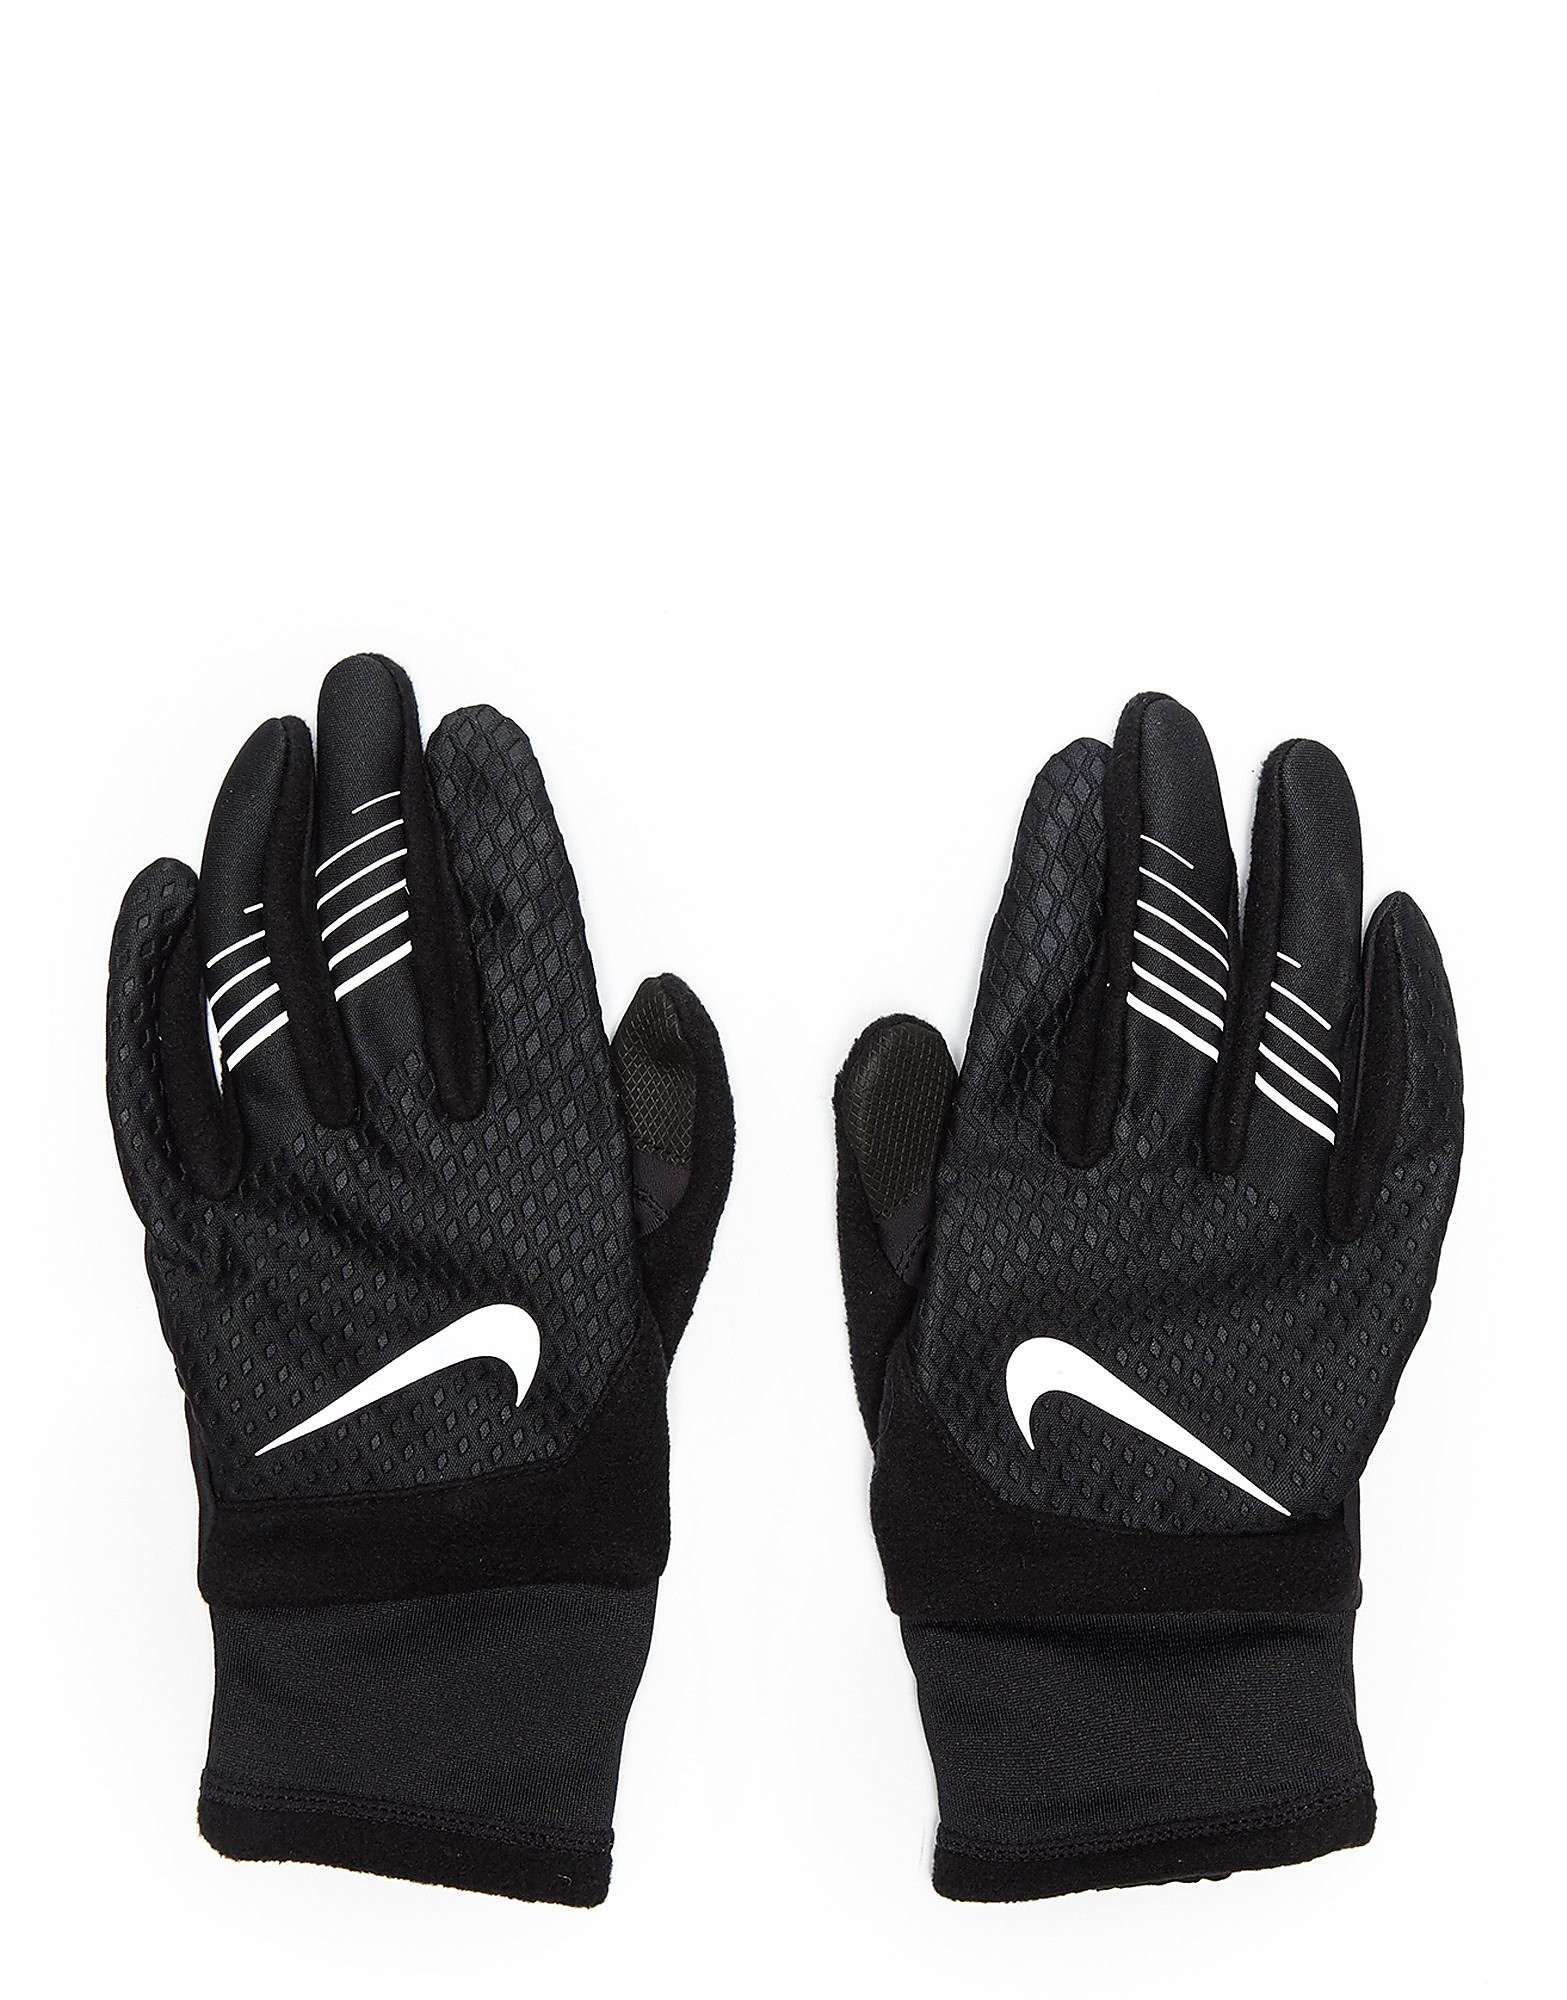 Leather gloves mens jd - Nike Therma Fit Running Gloves Black Silver Mens Black Silver